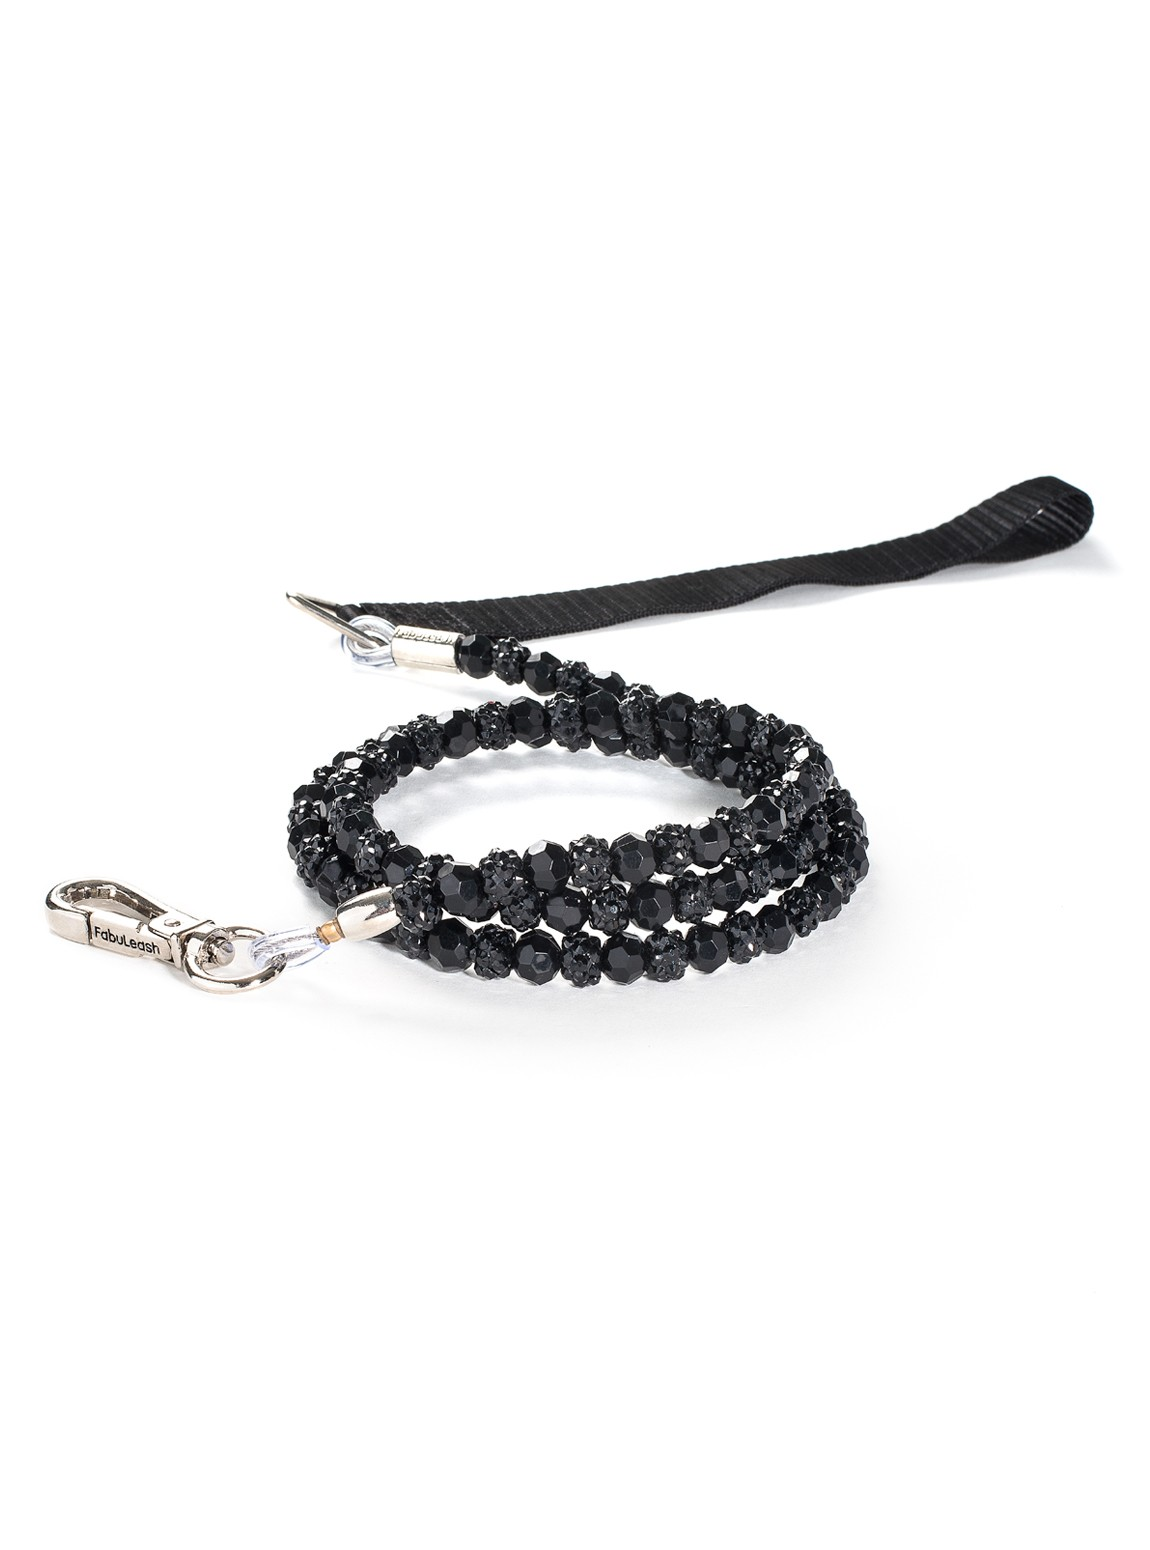 Fabuleash Black Fireball Beaded Dog Leash